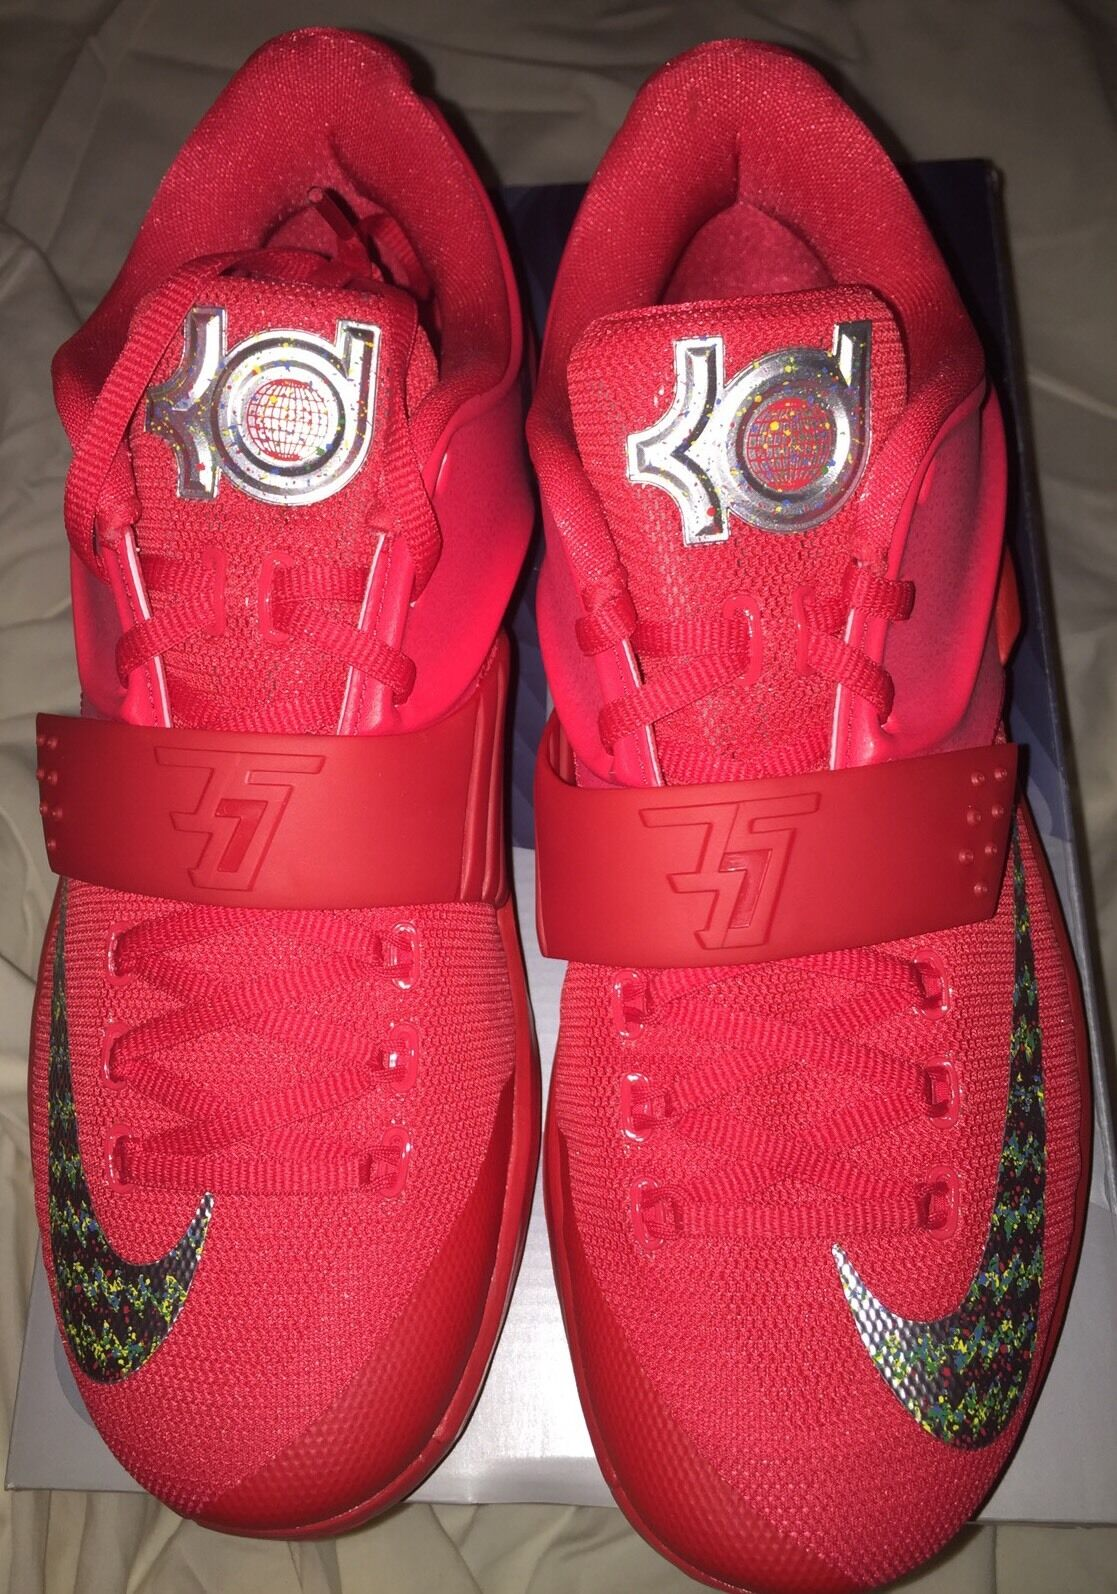 New Nike Kevin Durant Kd VII 7 Global Games Mens Size 9 DS Not red October Yeezy